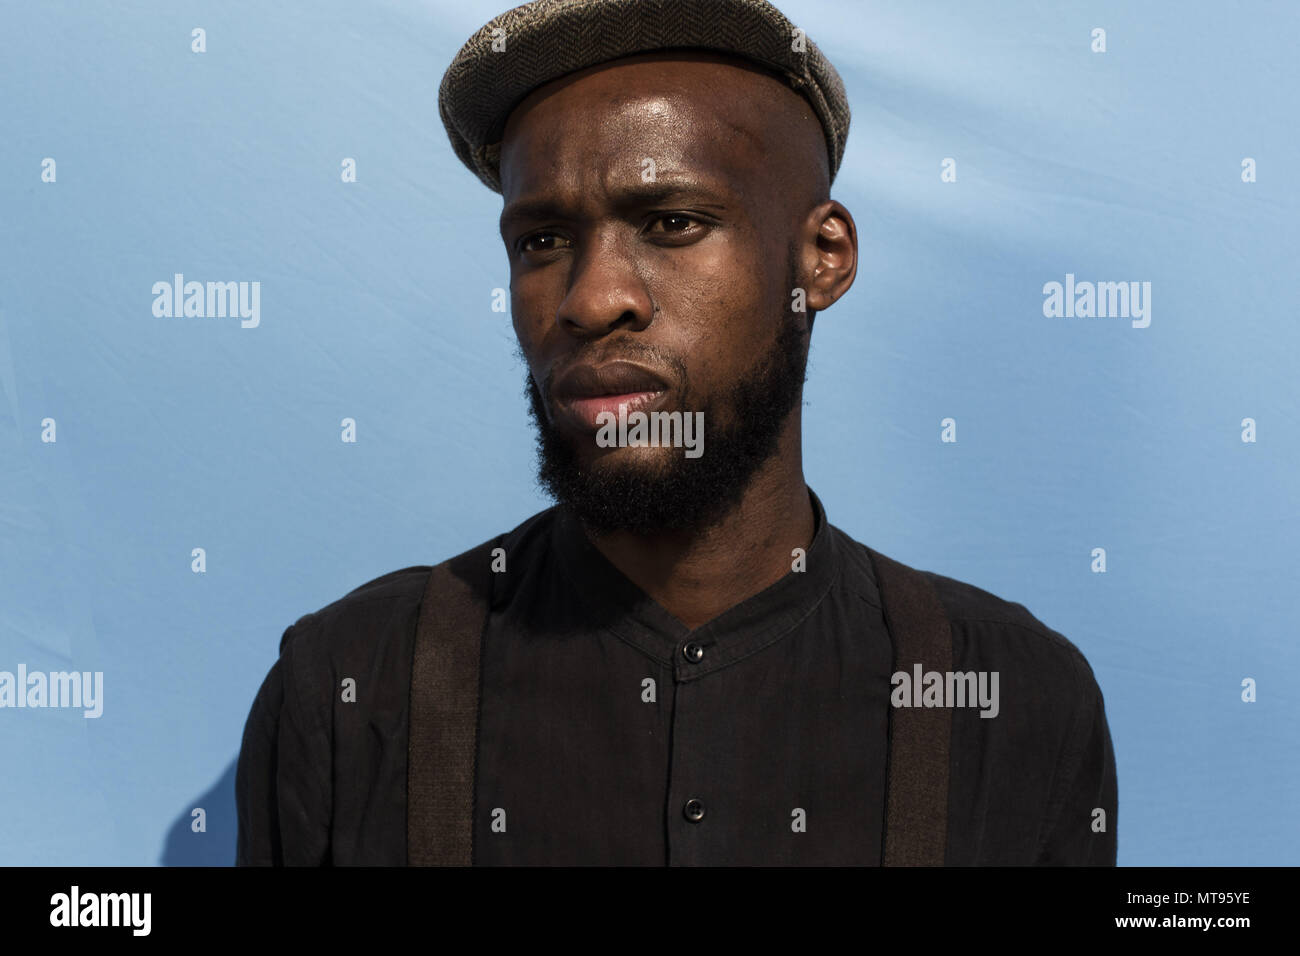 Johannesburg, Soweto, South Africa. 26th May, 2018. Visitors to the Izikhothane dance event stand for a portrait, at the Thokoza Park in Soweto, Johannesburg. Credit: Stefan Kleinowitz/ZUMA Wire/Alamy Live News Stock Photo